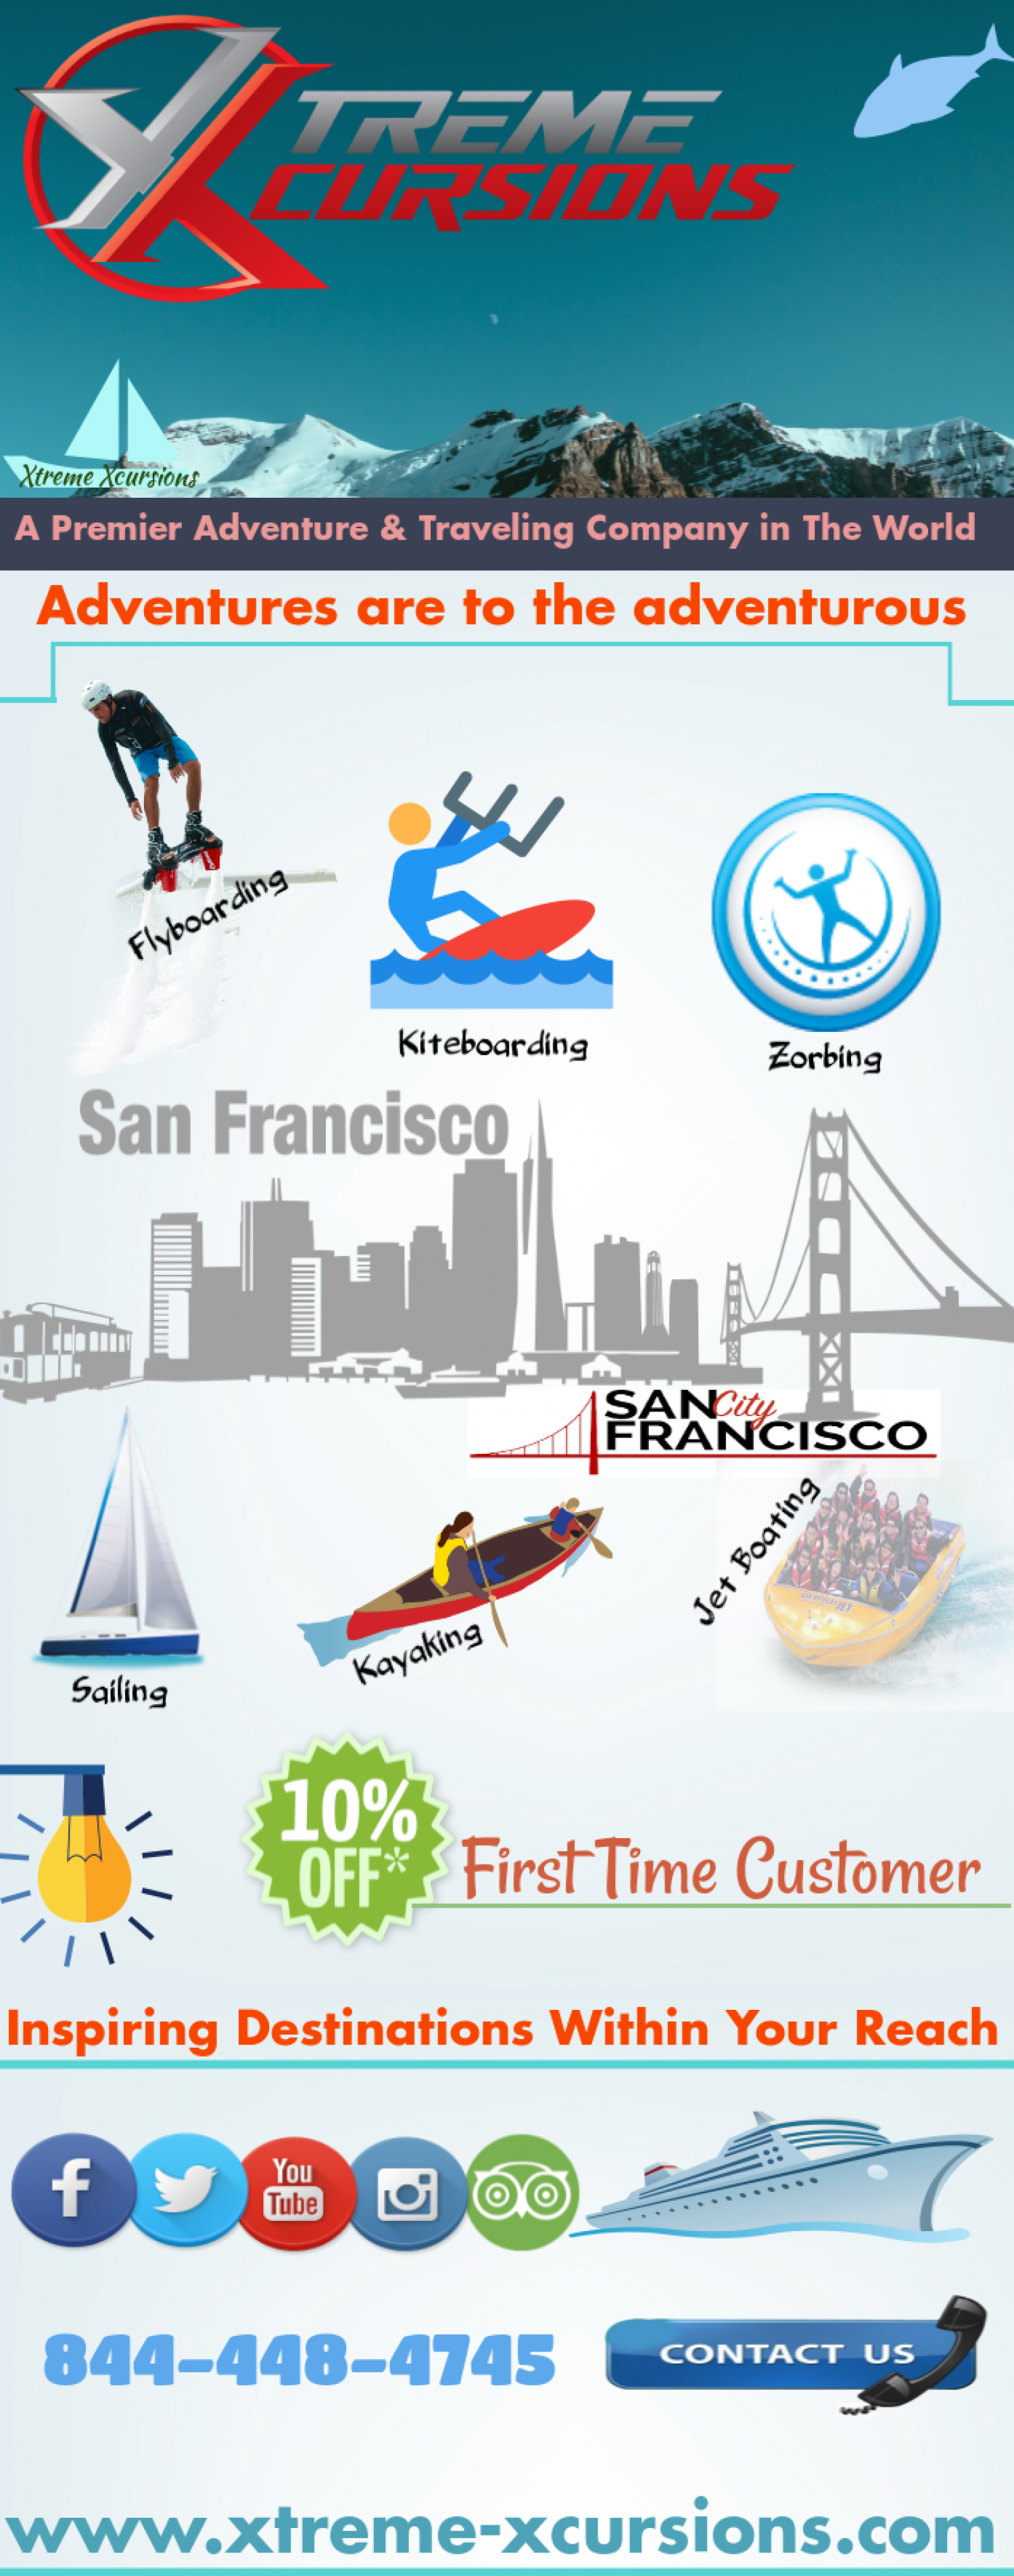 Sailing San Francisco - Xtreme Xcursions Infographic